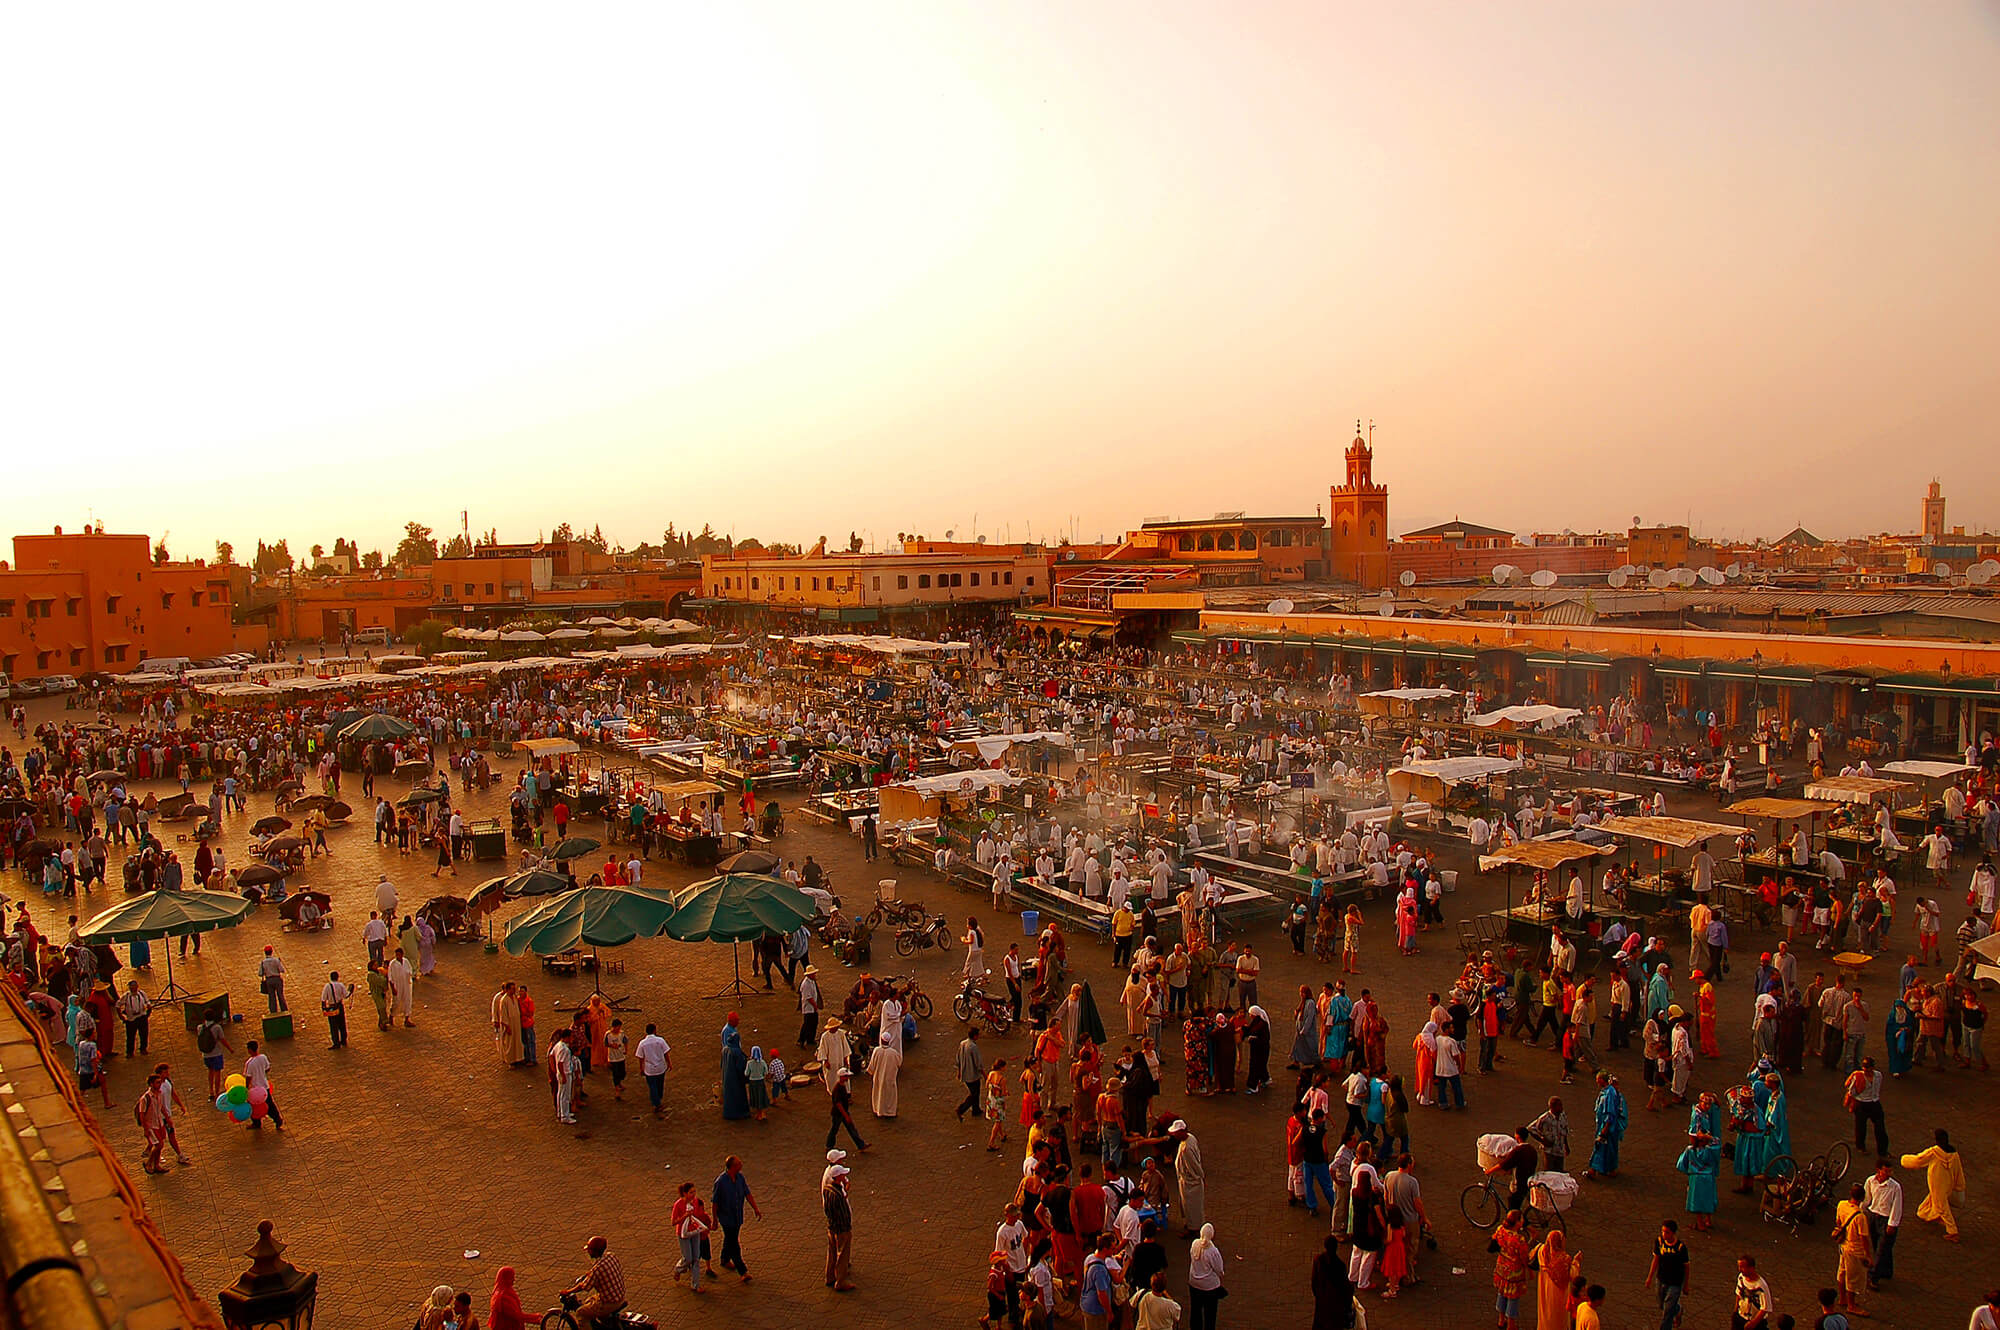 Sahara Desert Tour - Tap into the Magic of Marrakech where Old Meets New - Djemaa el Fna